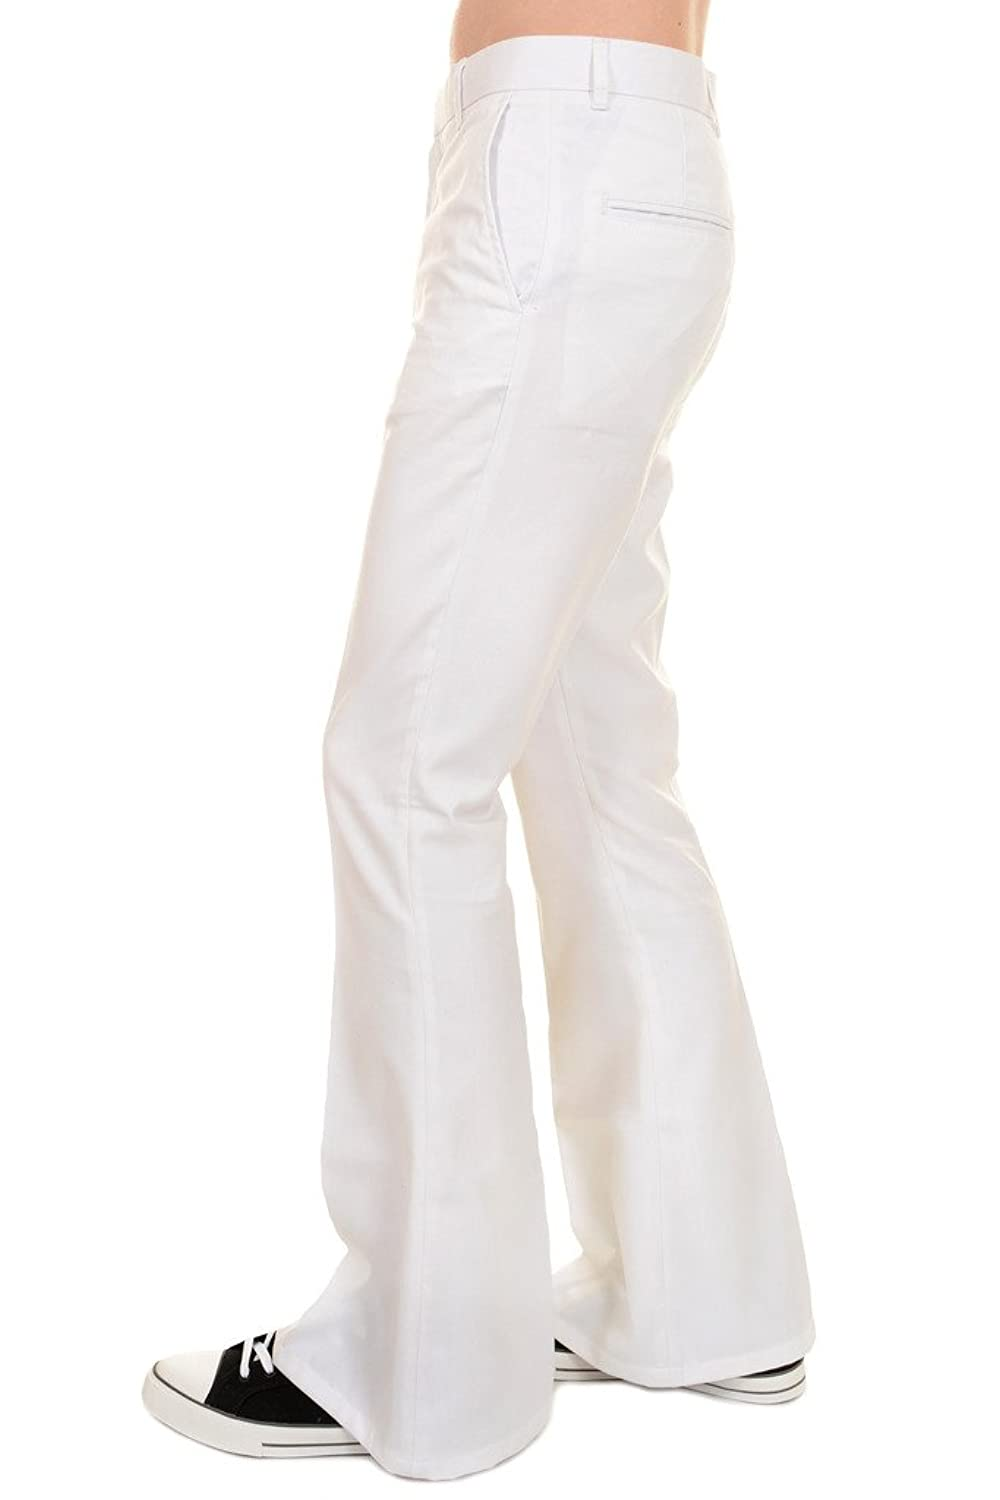 1960s Inspired Fashion: Recreate the Look 60s 70s Presley Vintage White Bell Bottom Trousers $35.00 AT vintagedancer.com